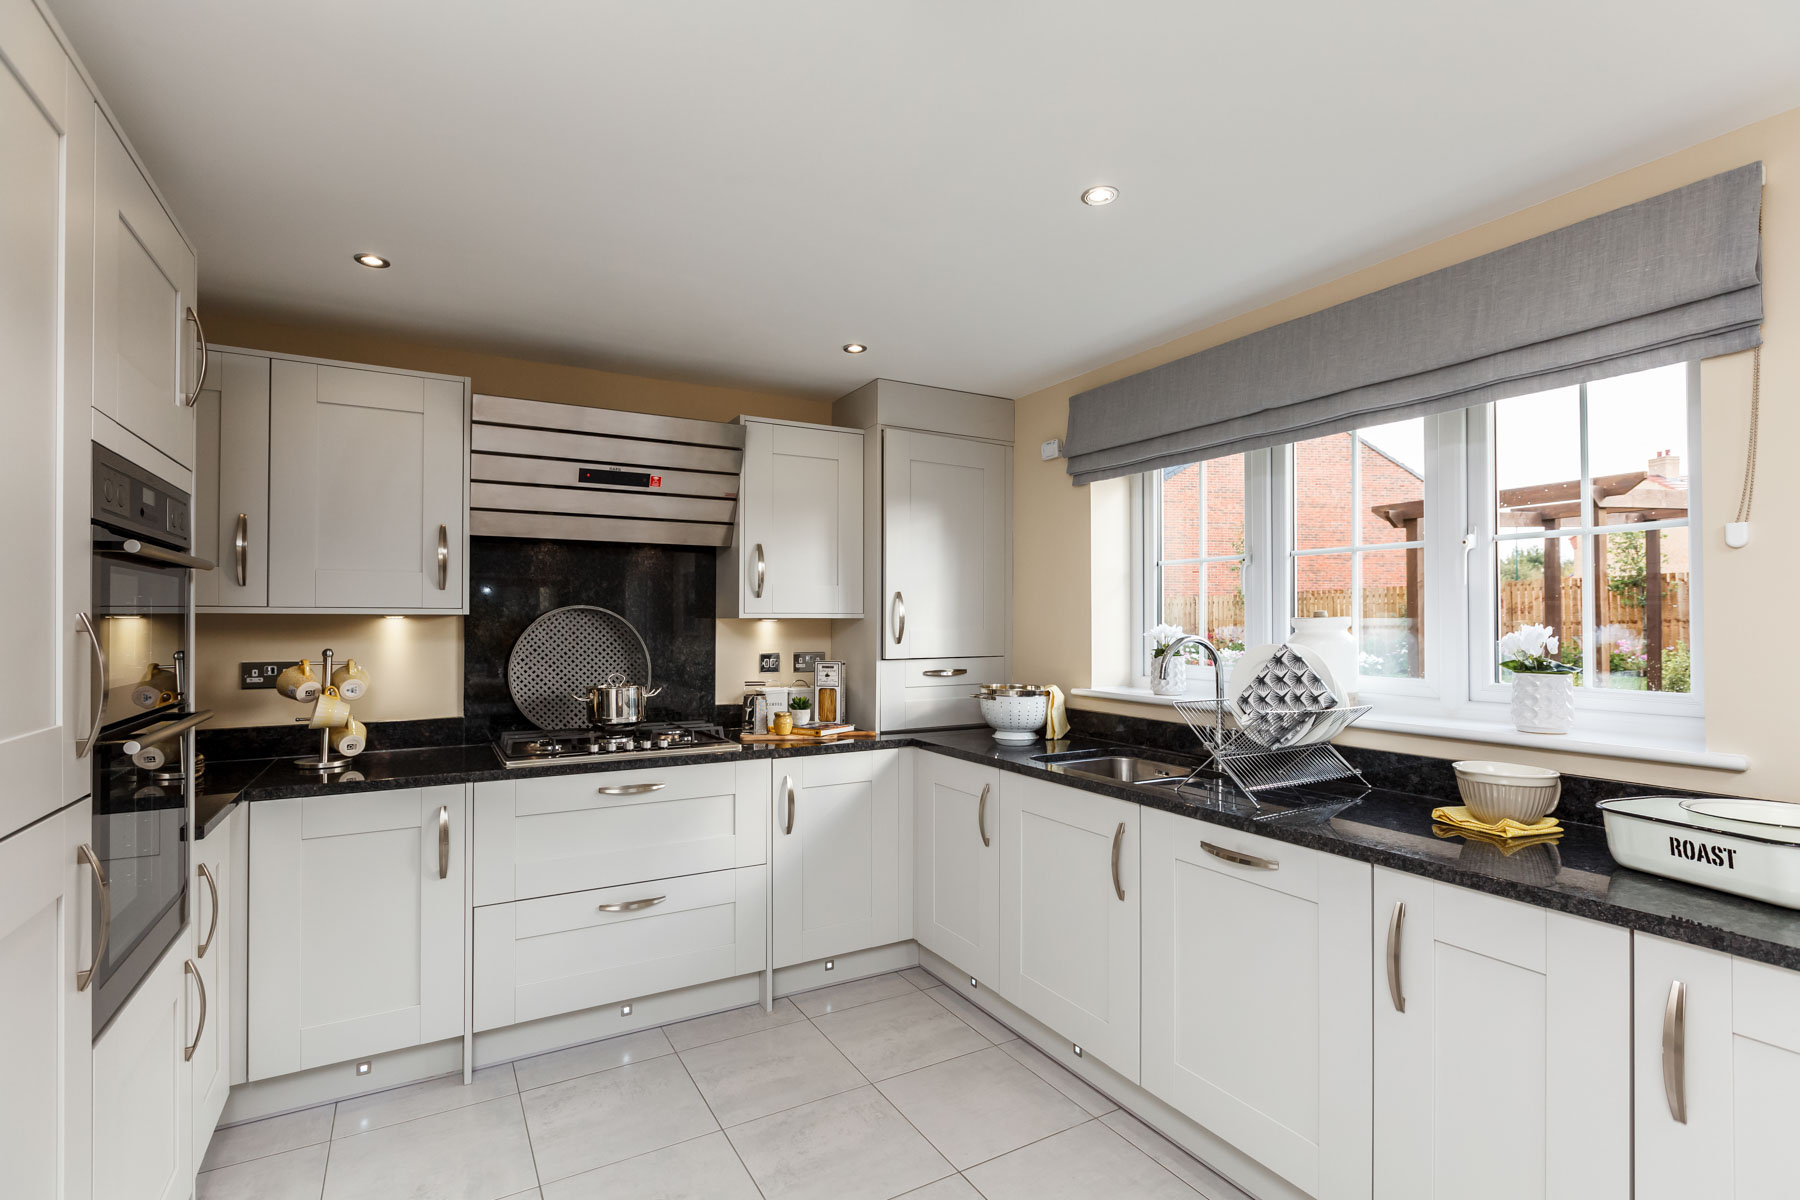 TW Exeter - Sherford - The Fir example kitchen